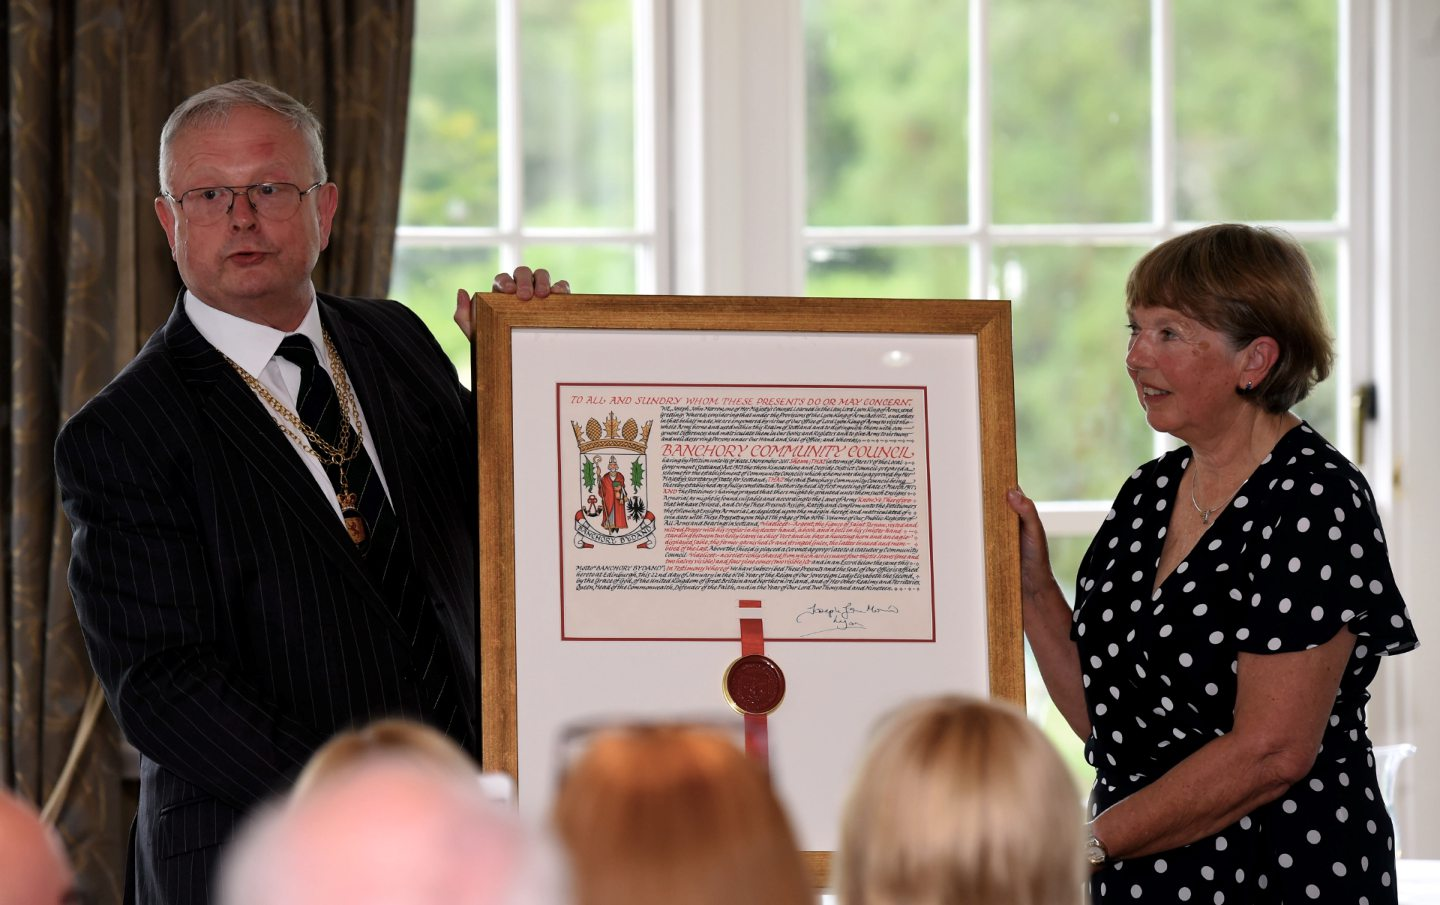 Presentation of new Coat of Arms to Banchory Community Council. Picture by Heather Fowlie.